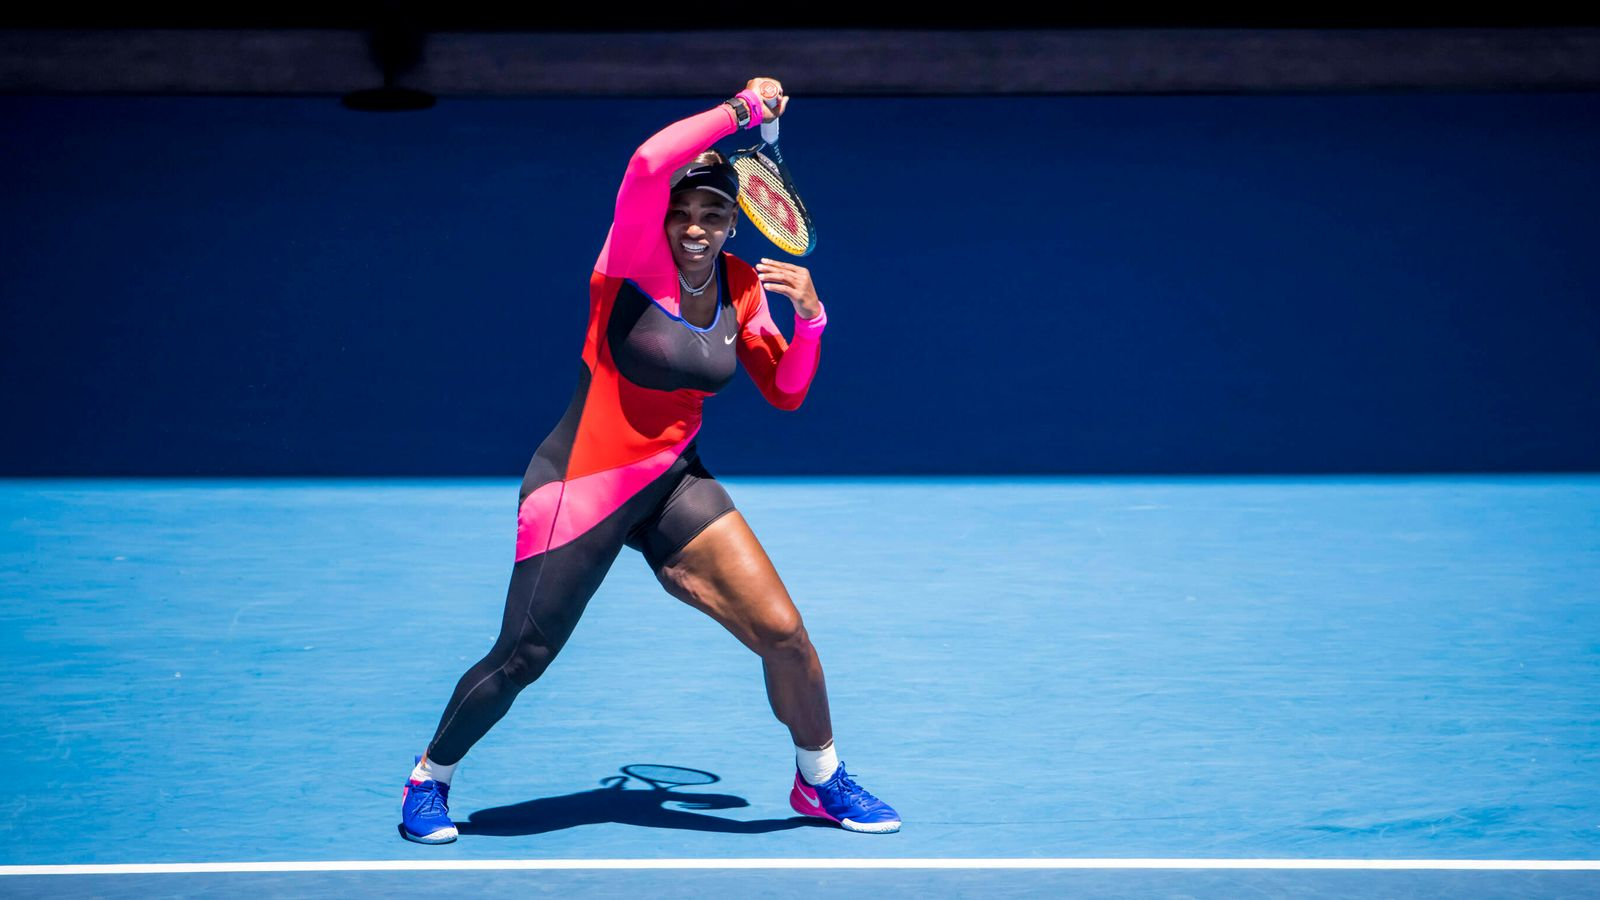 Tennis News: Williams continues Australian Open – Andreescu Retires |  Tennis News